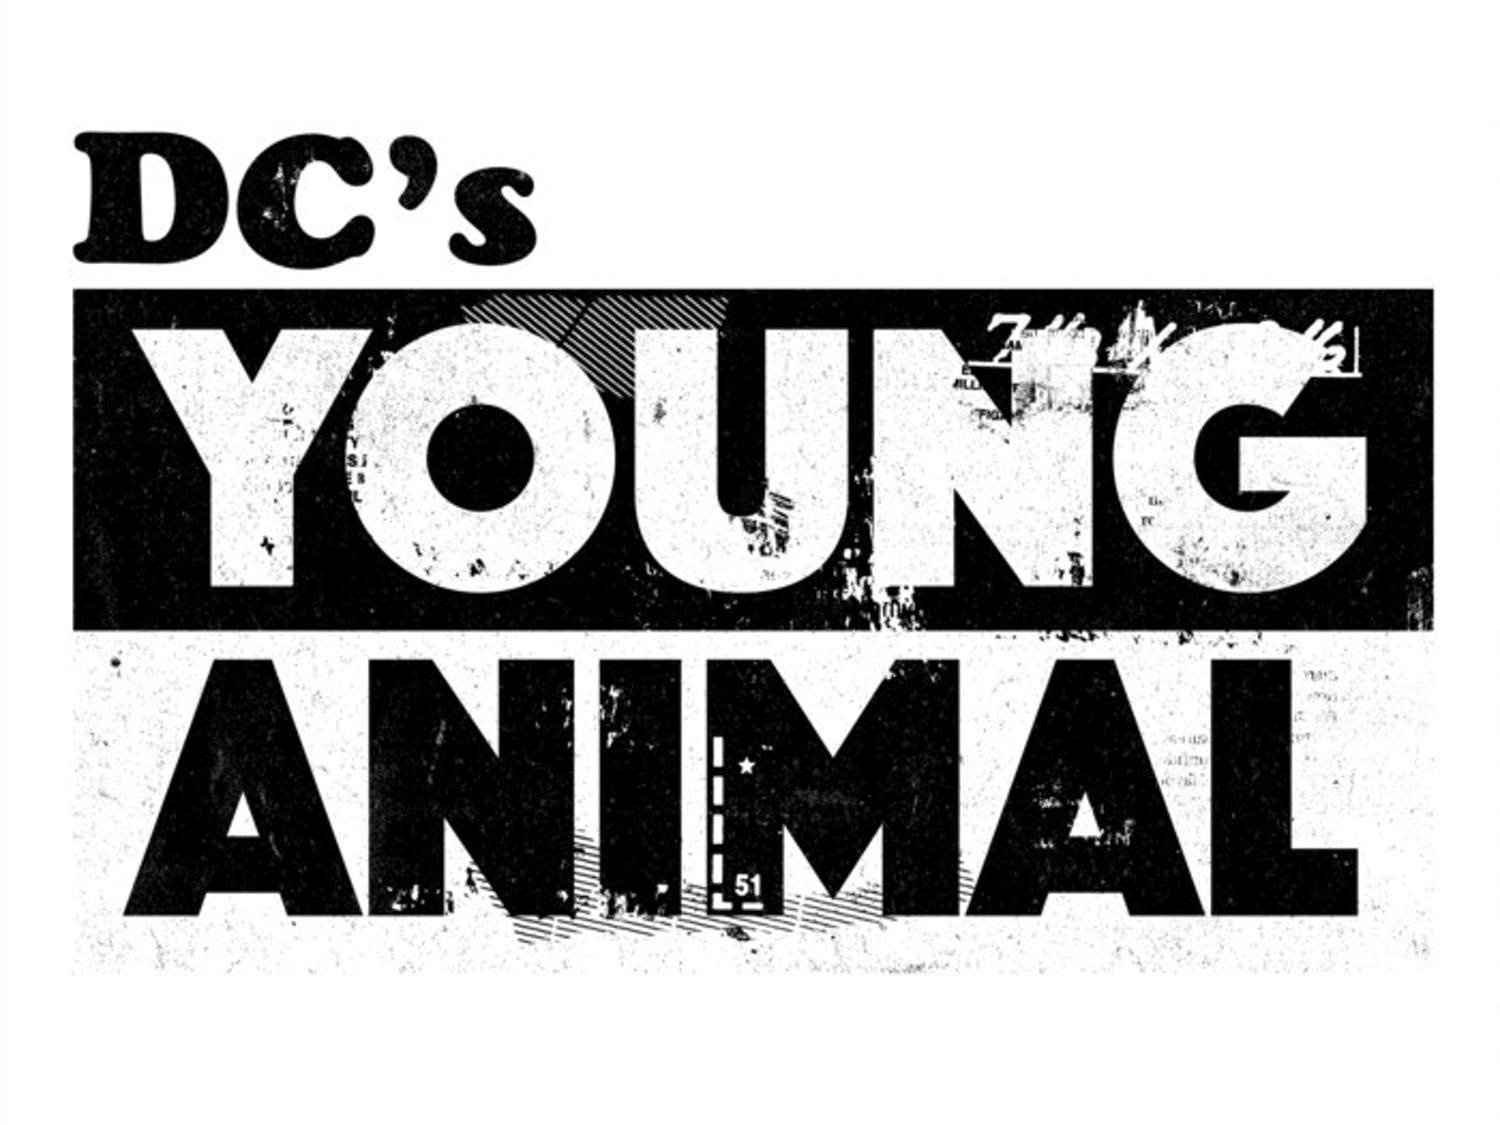 """DC Comic's released the""""Young Animal"""" series on Sept. 14, bringing back a classic style and """"mature reads"""" similar to their original attempt with """"Vertigo."""""""